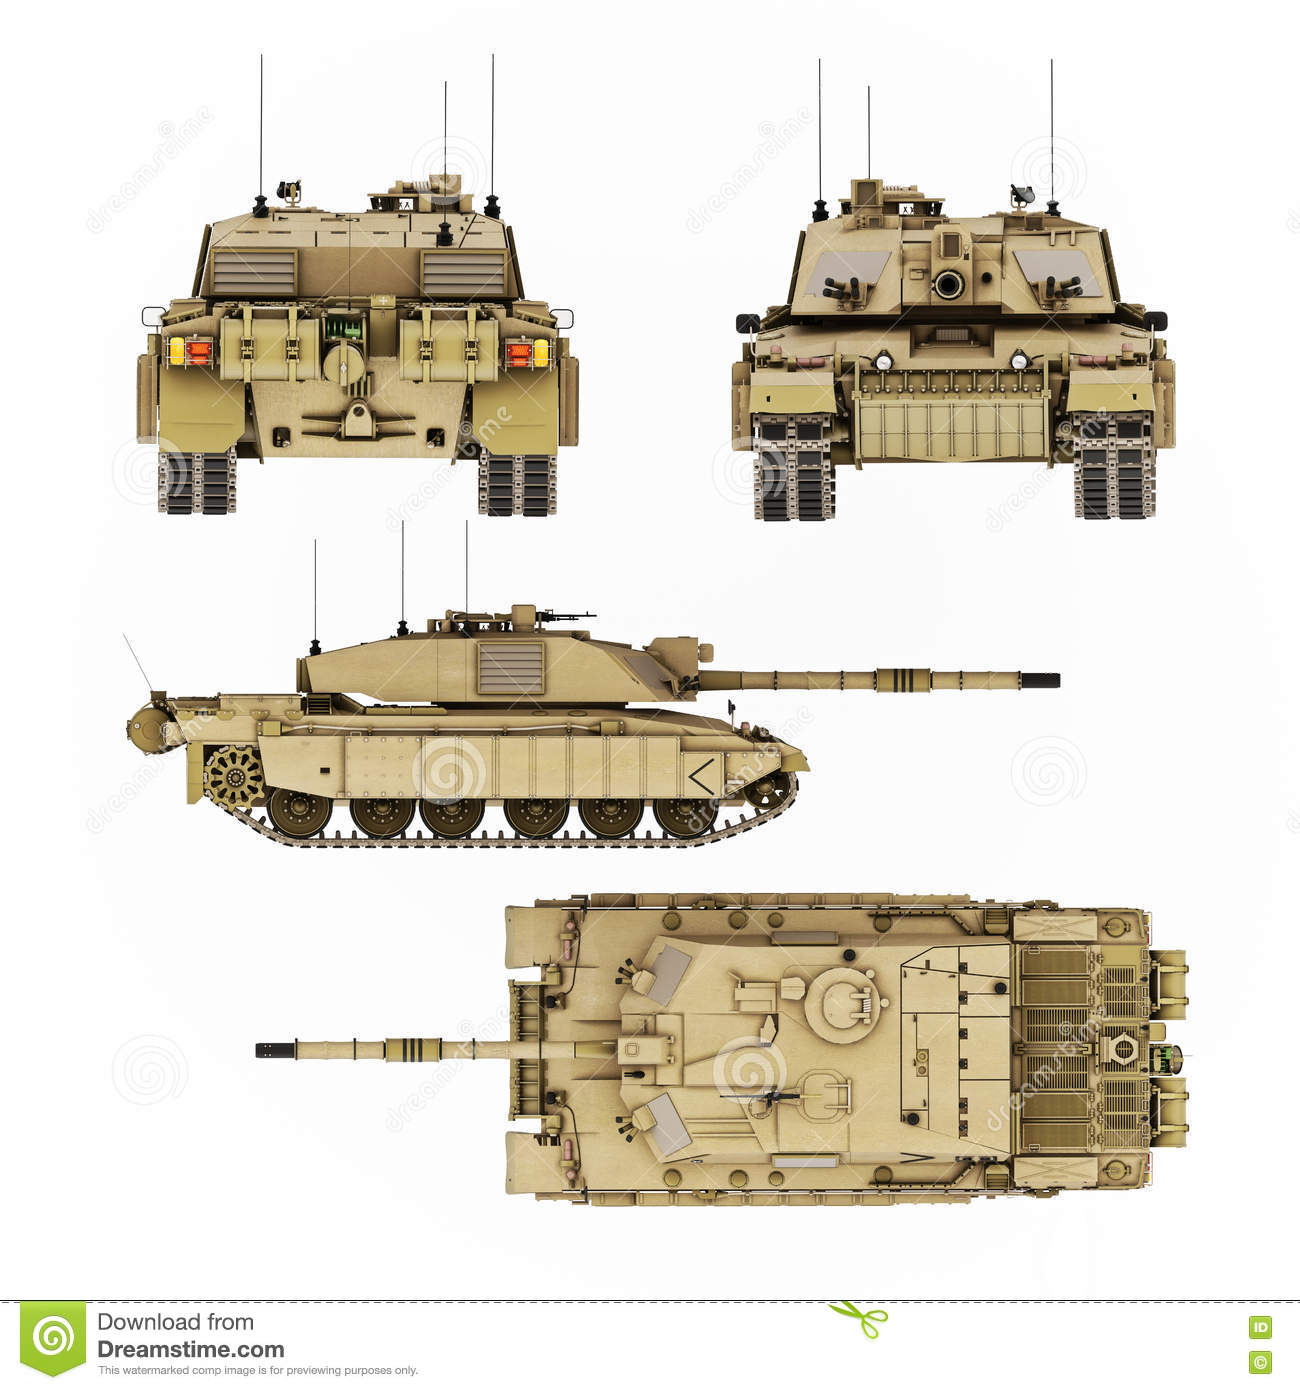 2309055c98495 Military Armored Tank Illustration With Four Views Of Detail. Top ...